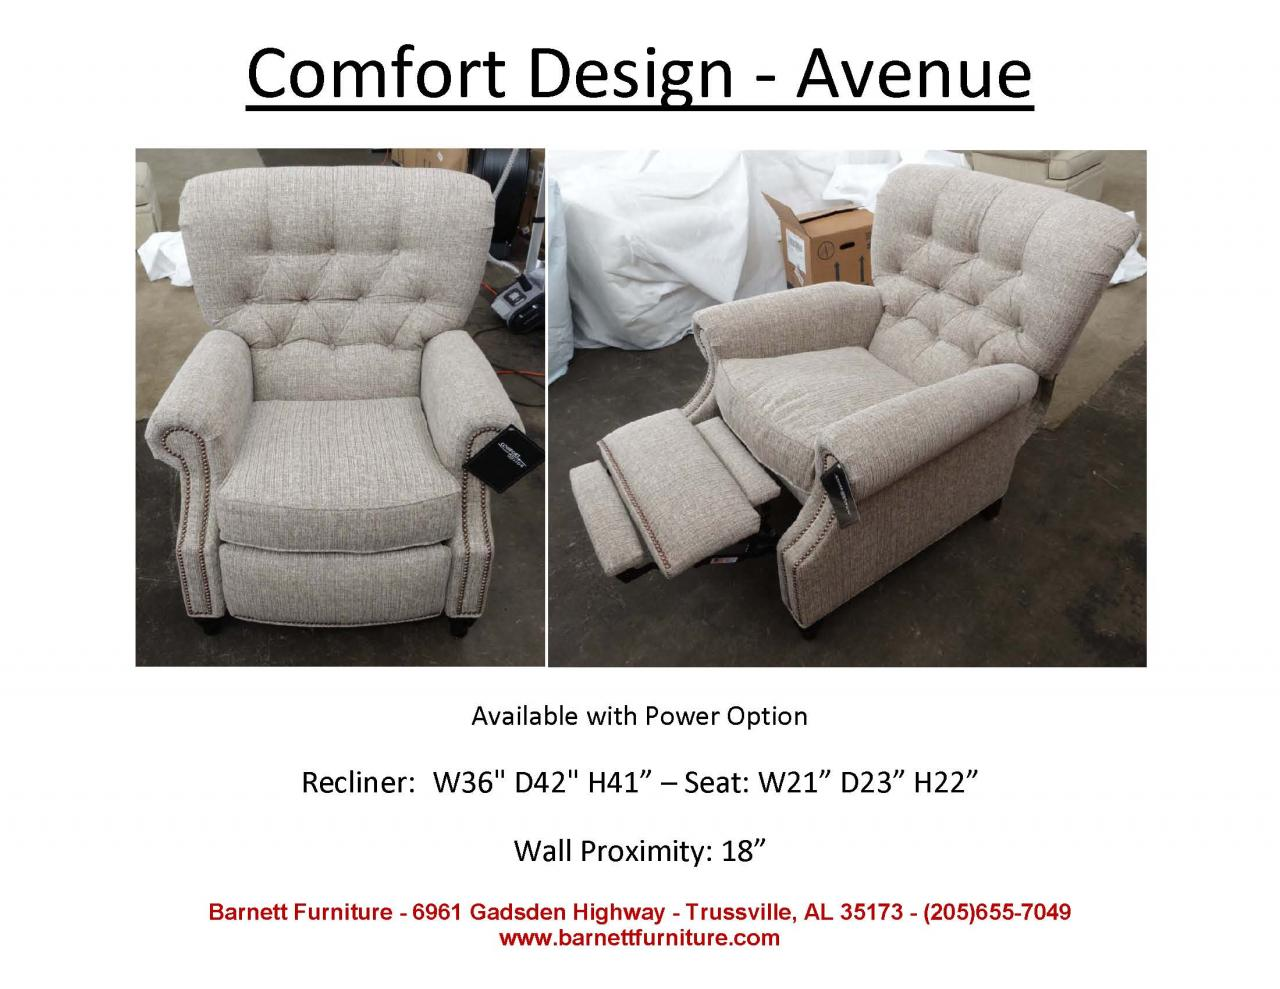 loveseat inspirational sale for manhattan loveseats ideas and leather luxury of sofa comfort furniture fresh